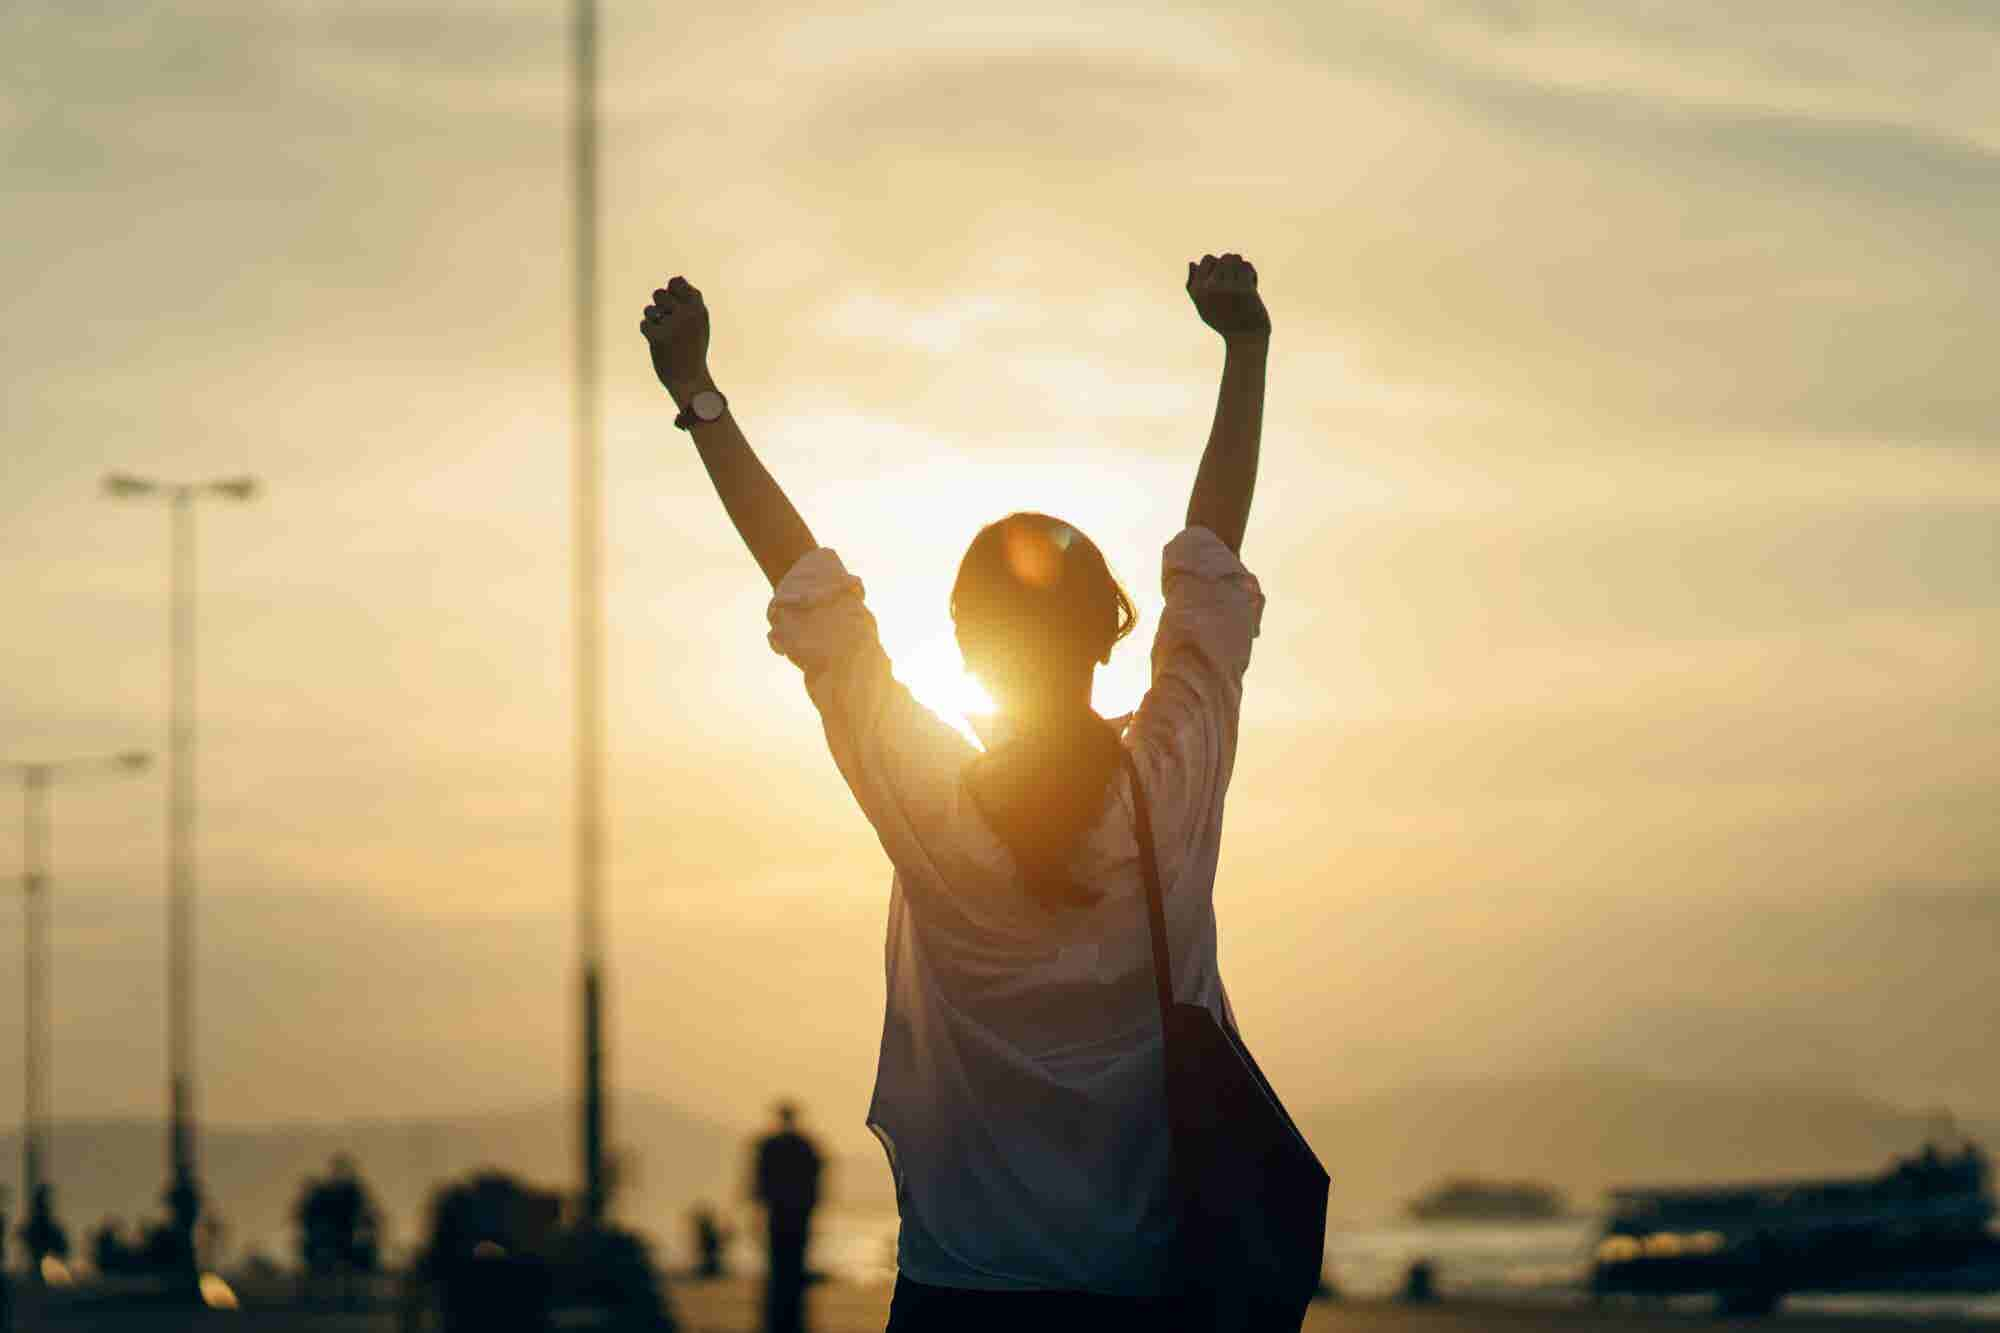 50 Motivational Quotes From Inspiring Women Leaders